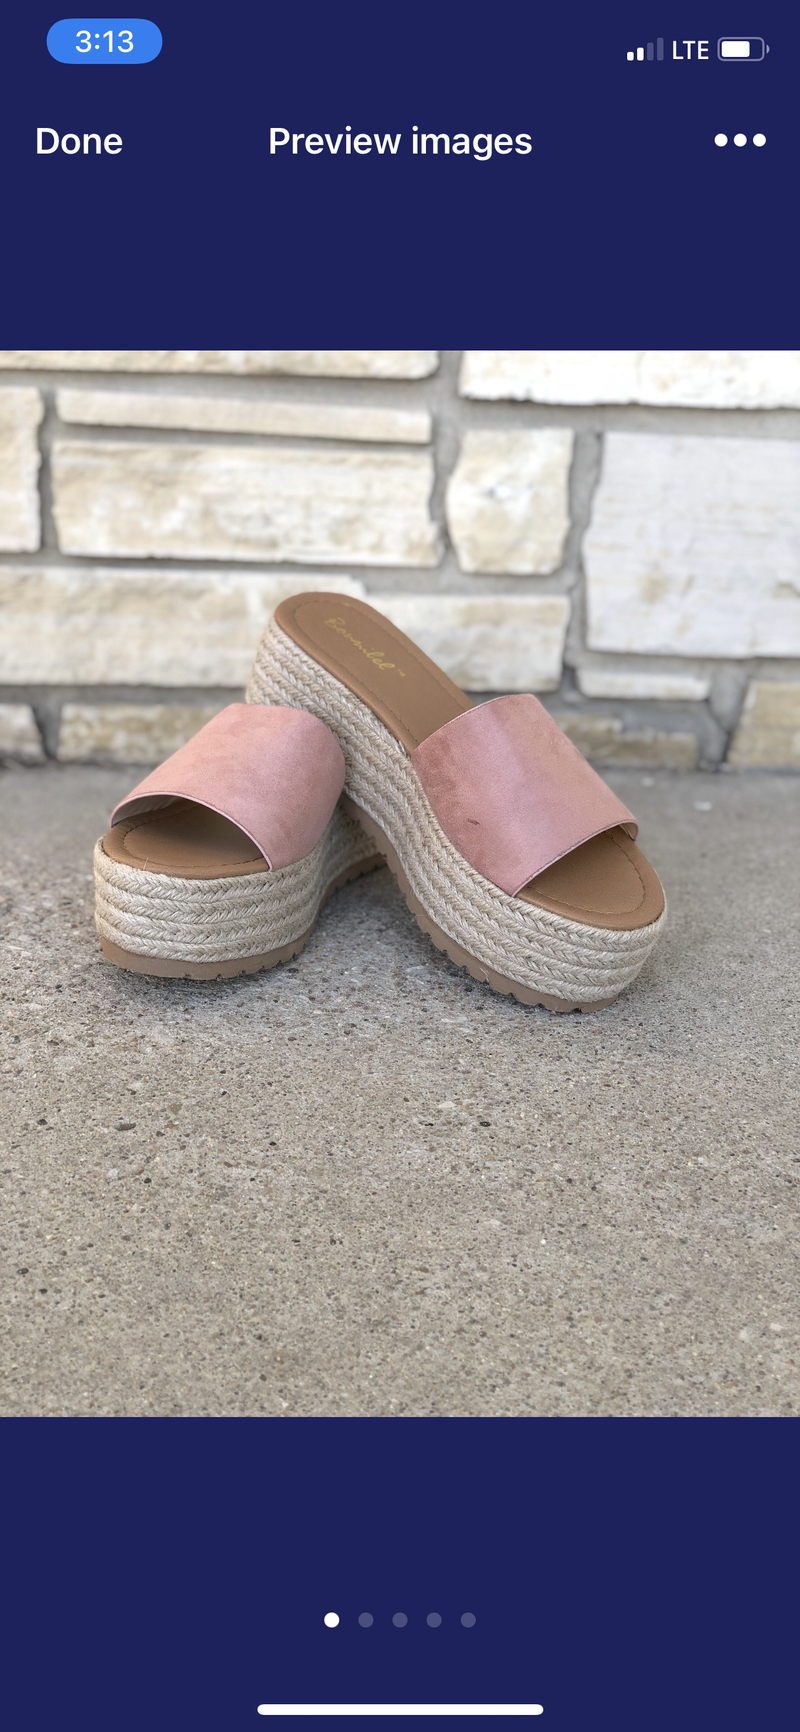 The Grace Platform Sandal